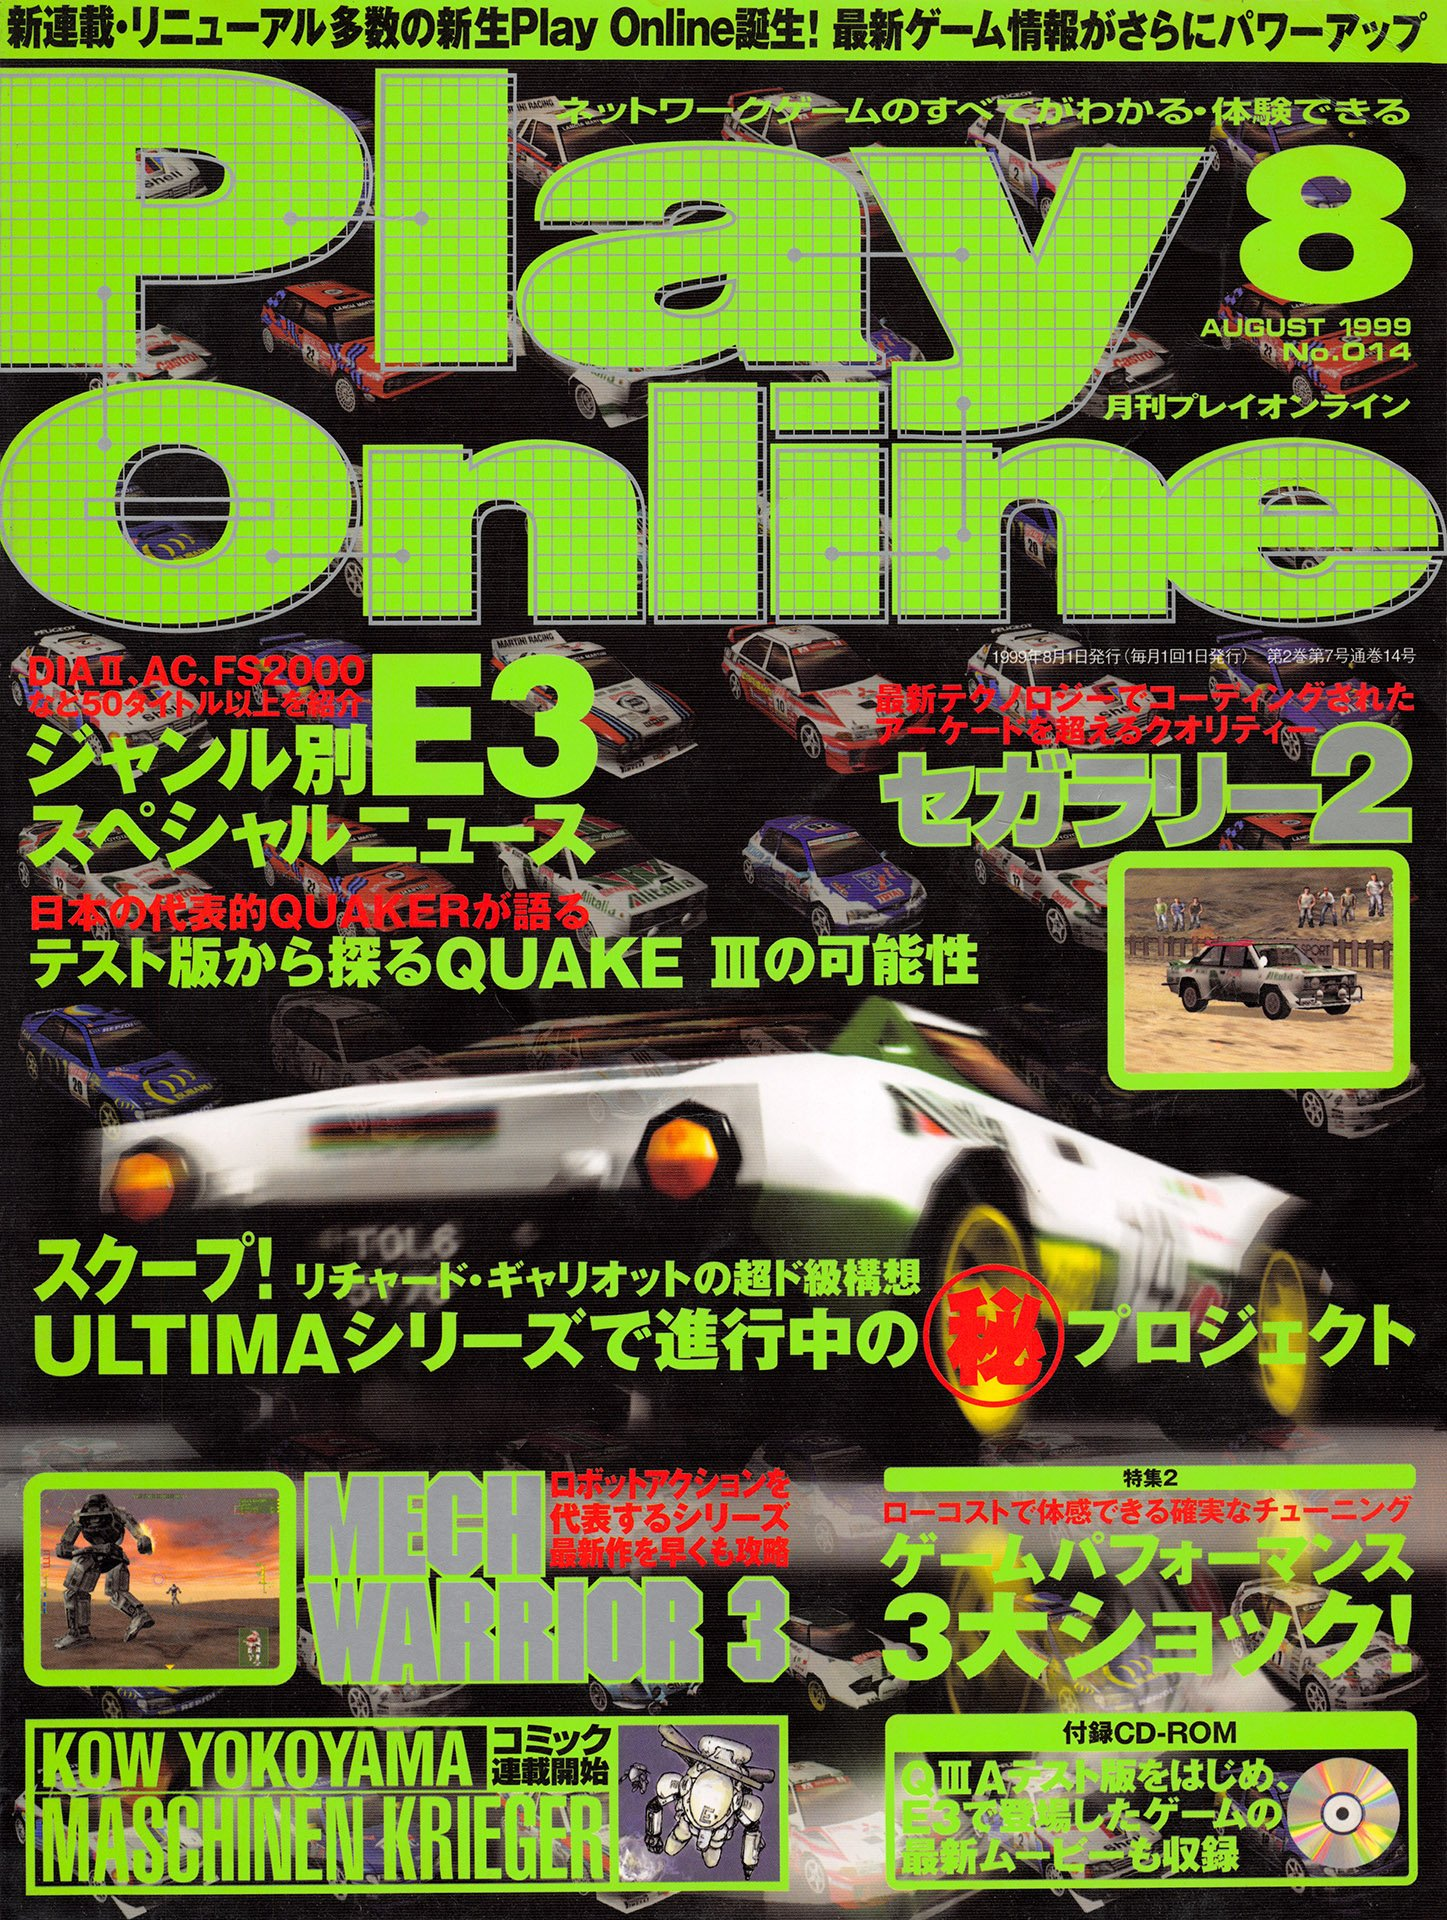 Play Online No.014 (August 1999)